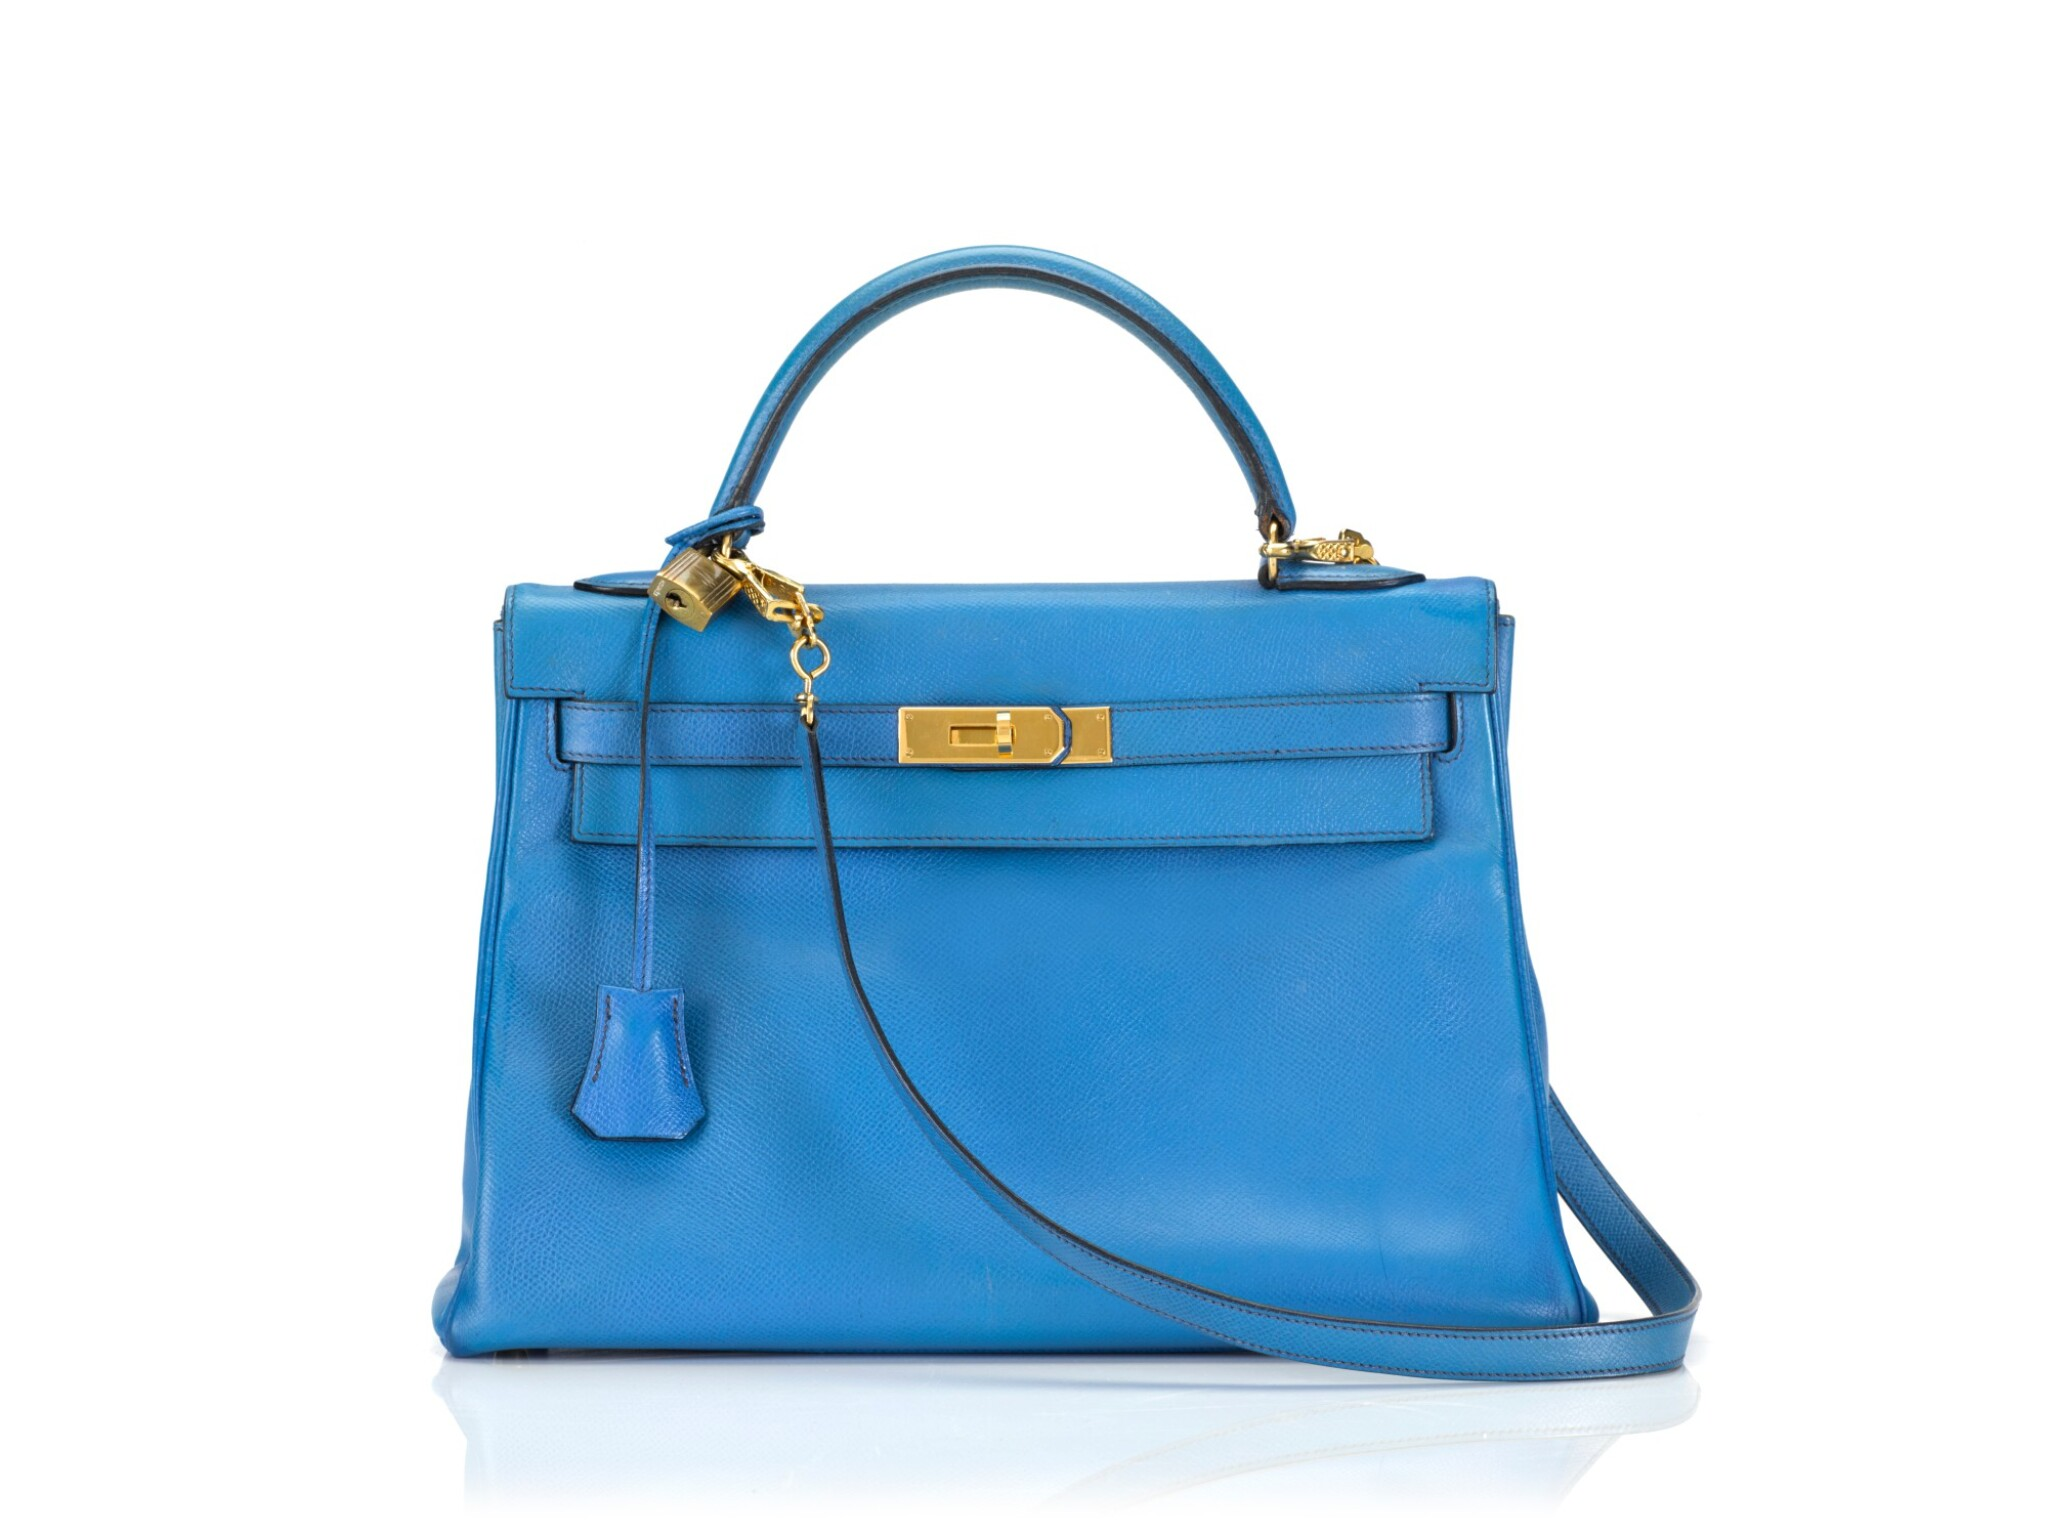 View full screen - View 1 of Lot 16. KELLY 32 RETOURNE BLUE FRANCE COLOUR IN COURCHEVEL LEATHER WITH GOLD HARDWARE. HERMÈS, 1992 .